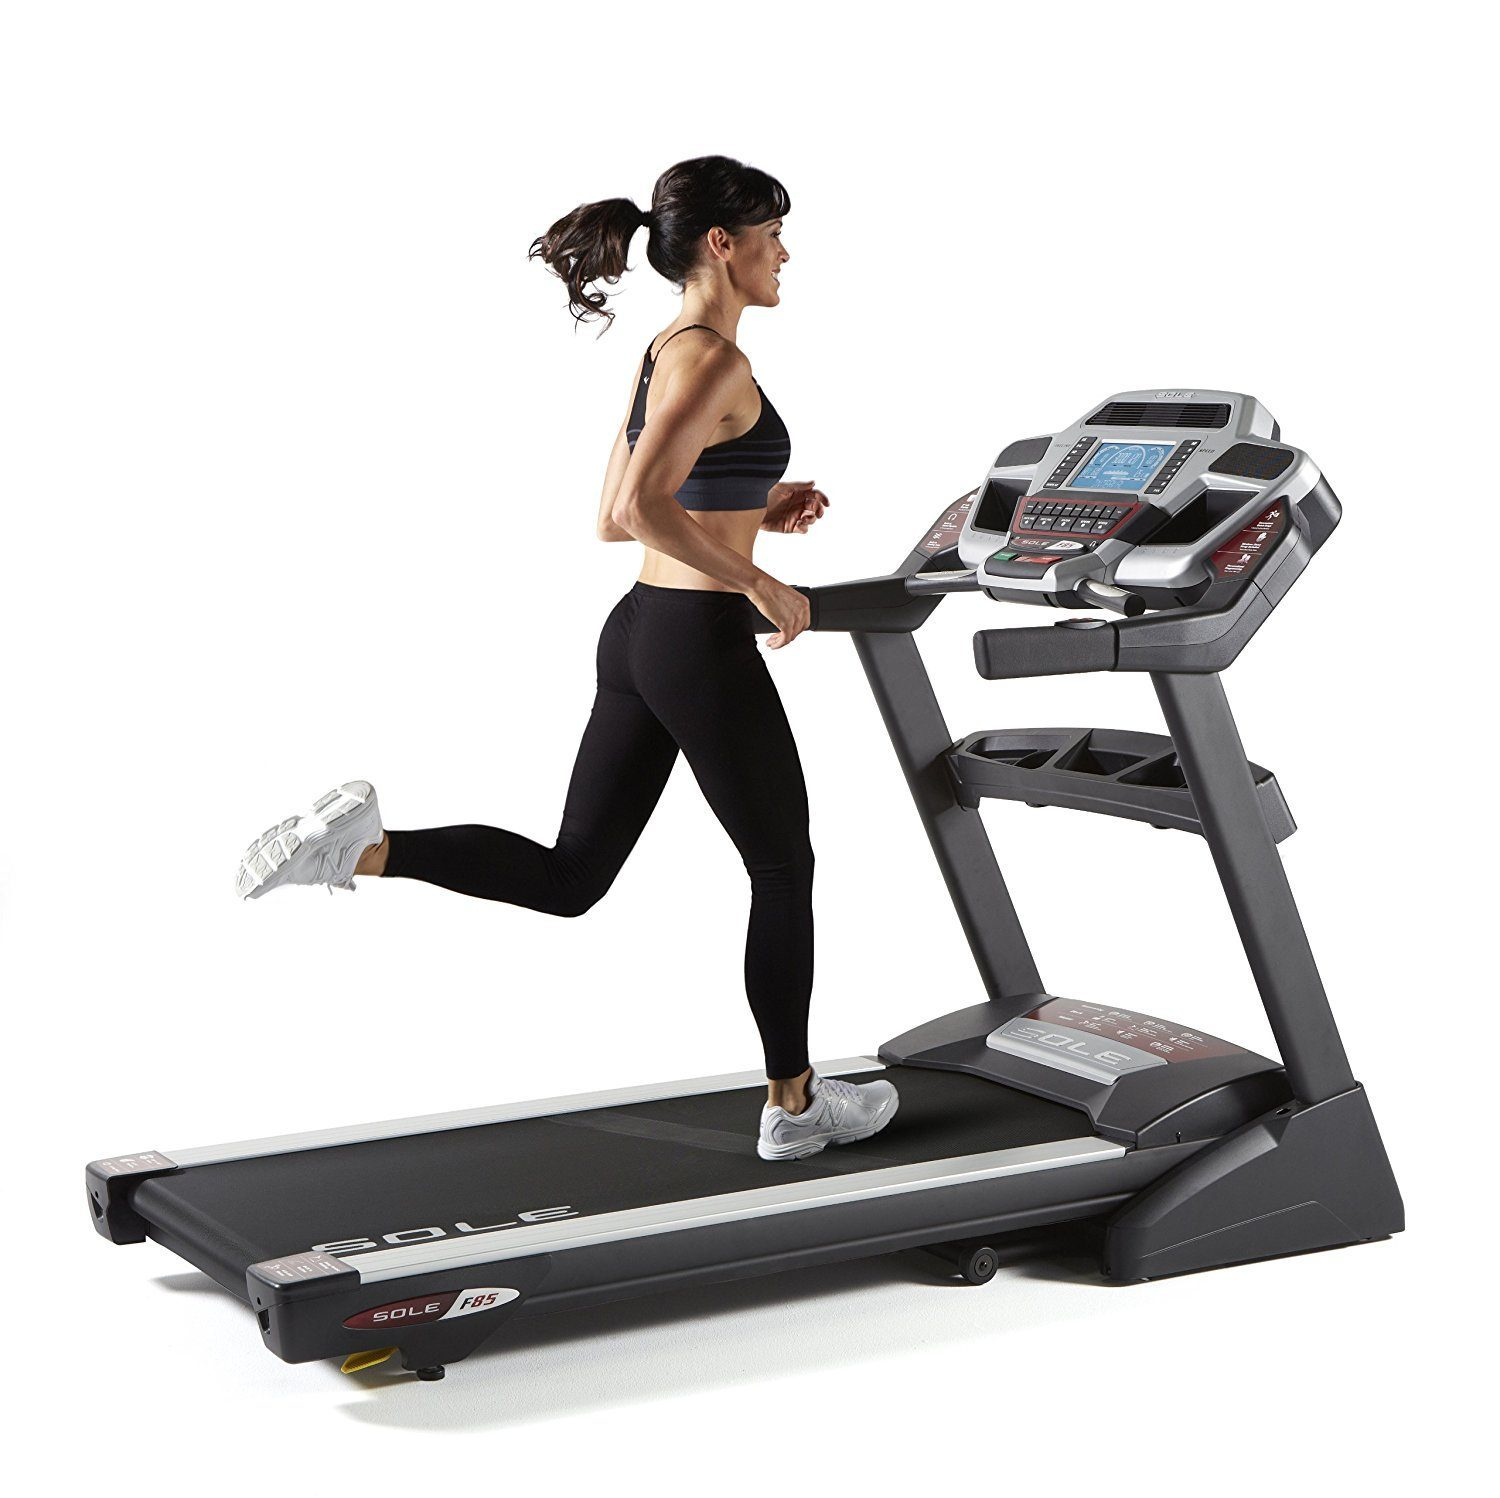 6 BEST commercial treadmills hands DOWN! 3